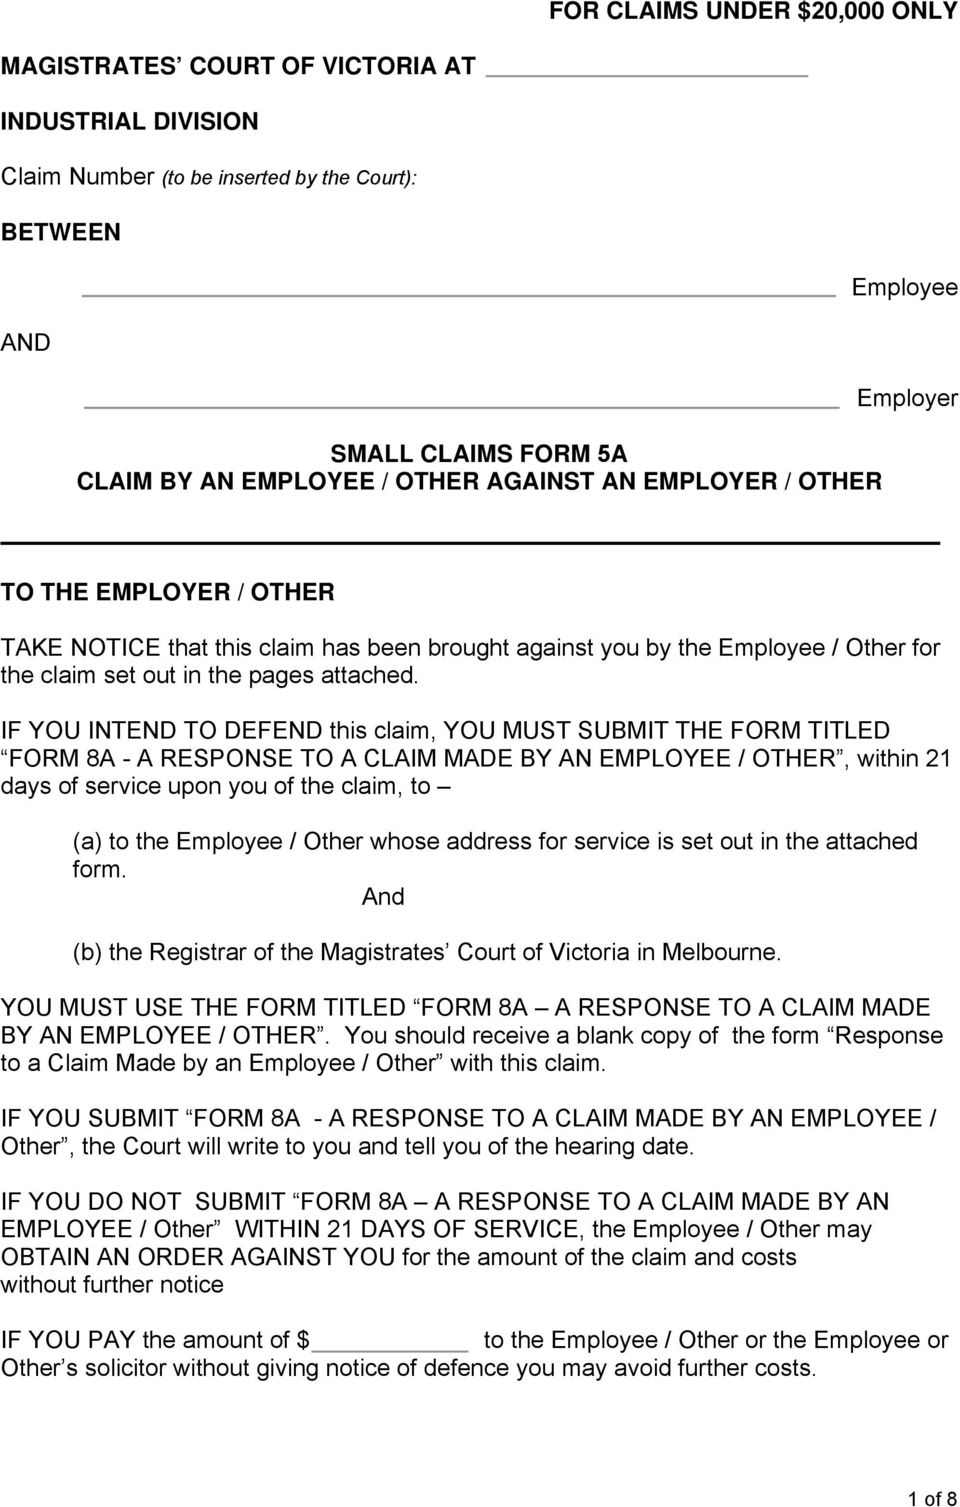 IF YOU INTEND TO DEFEND this claim, YOU MUST SUBMIT THE FORM TITLED FORM 8A - A RESPONSE TO A CLAIM MADE BY AN EMPLOYEE / OTHER, within 21 days of service upon you of the claim, to (a) to the